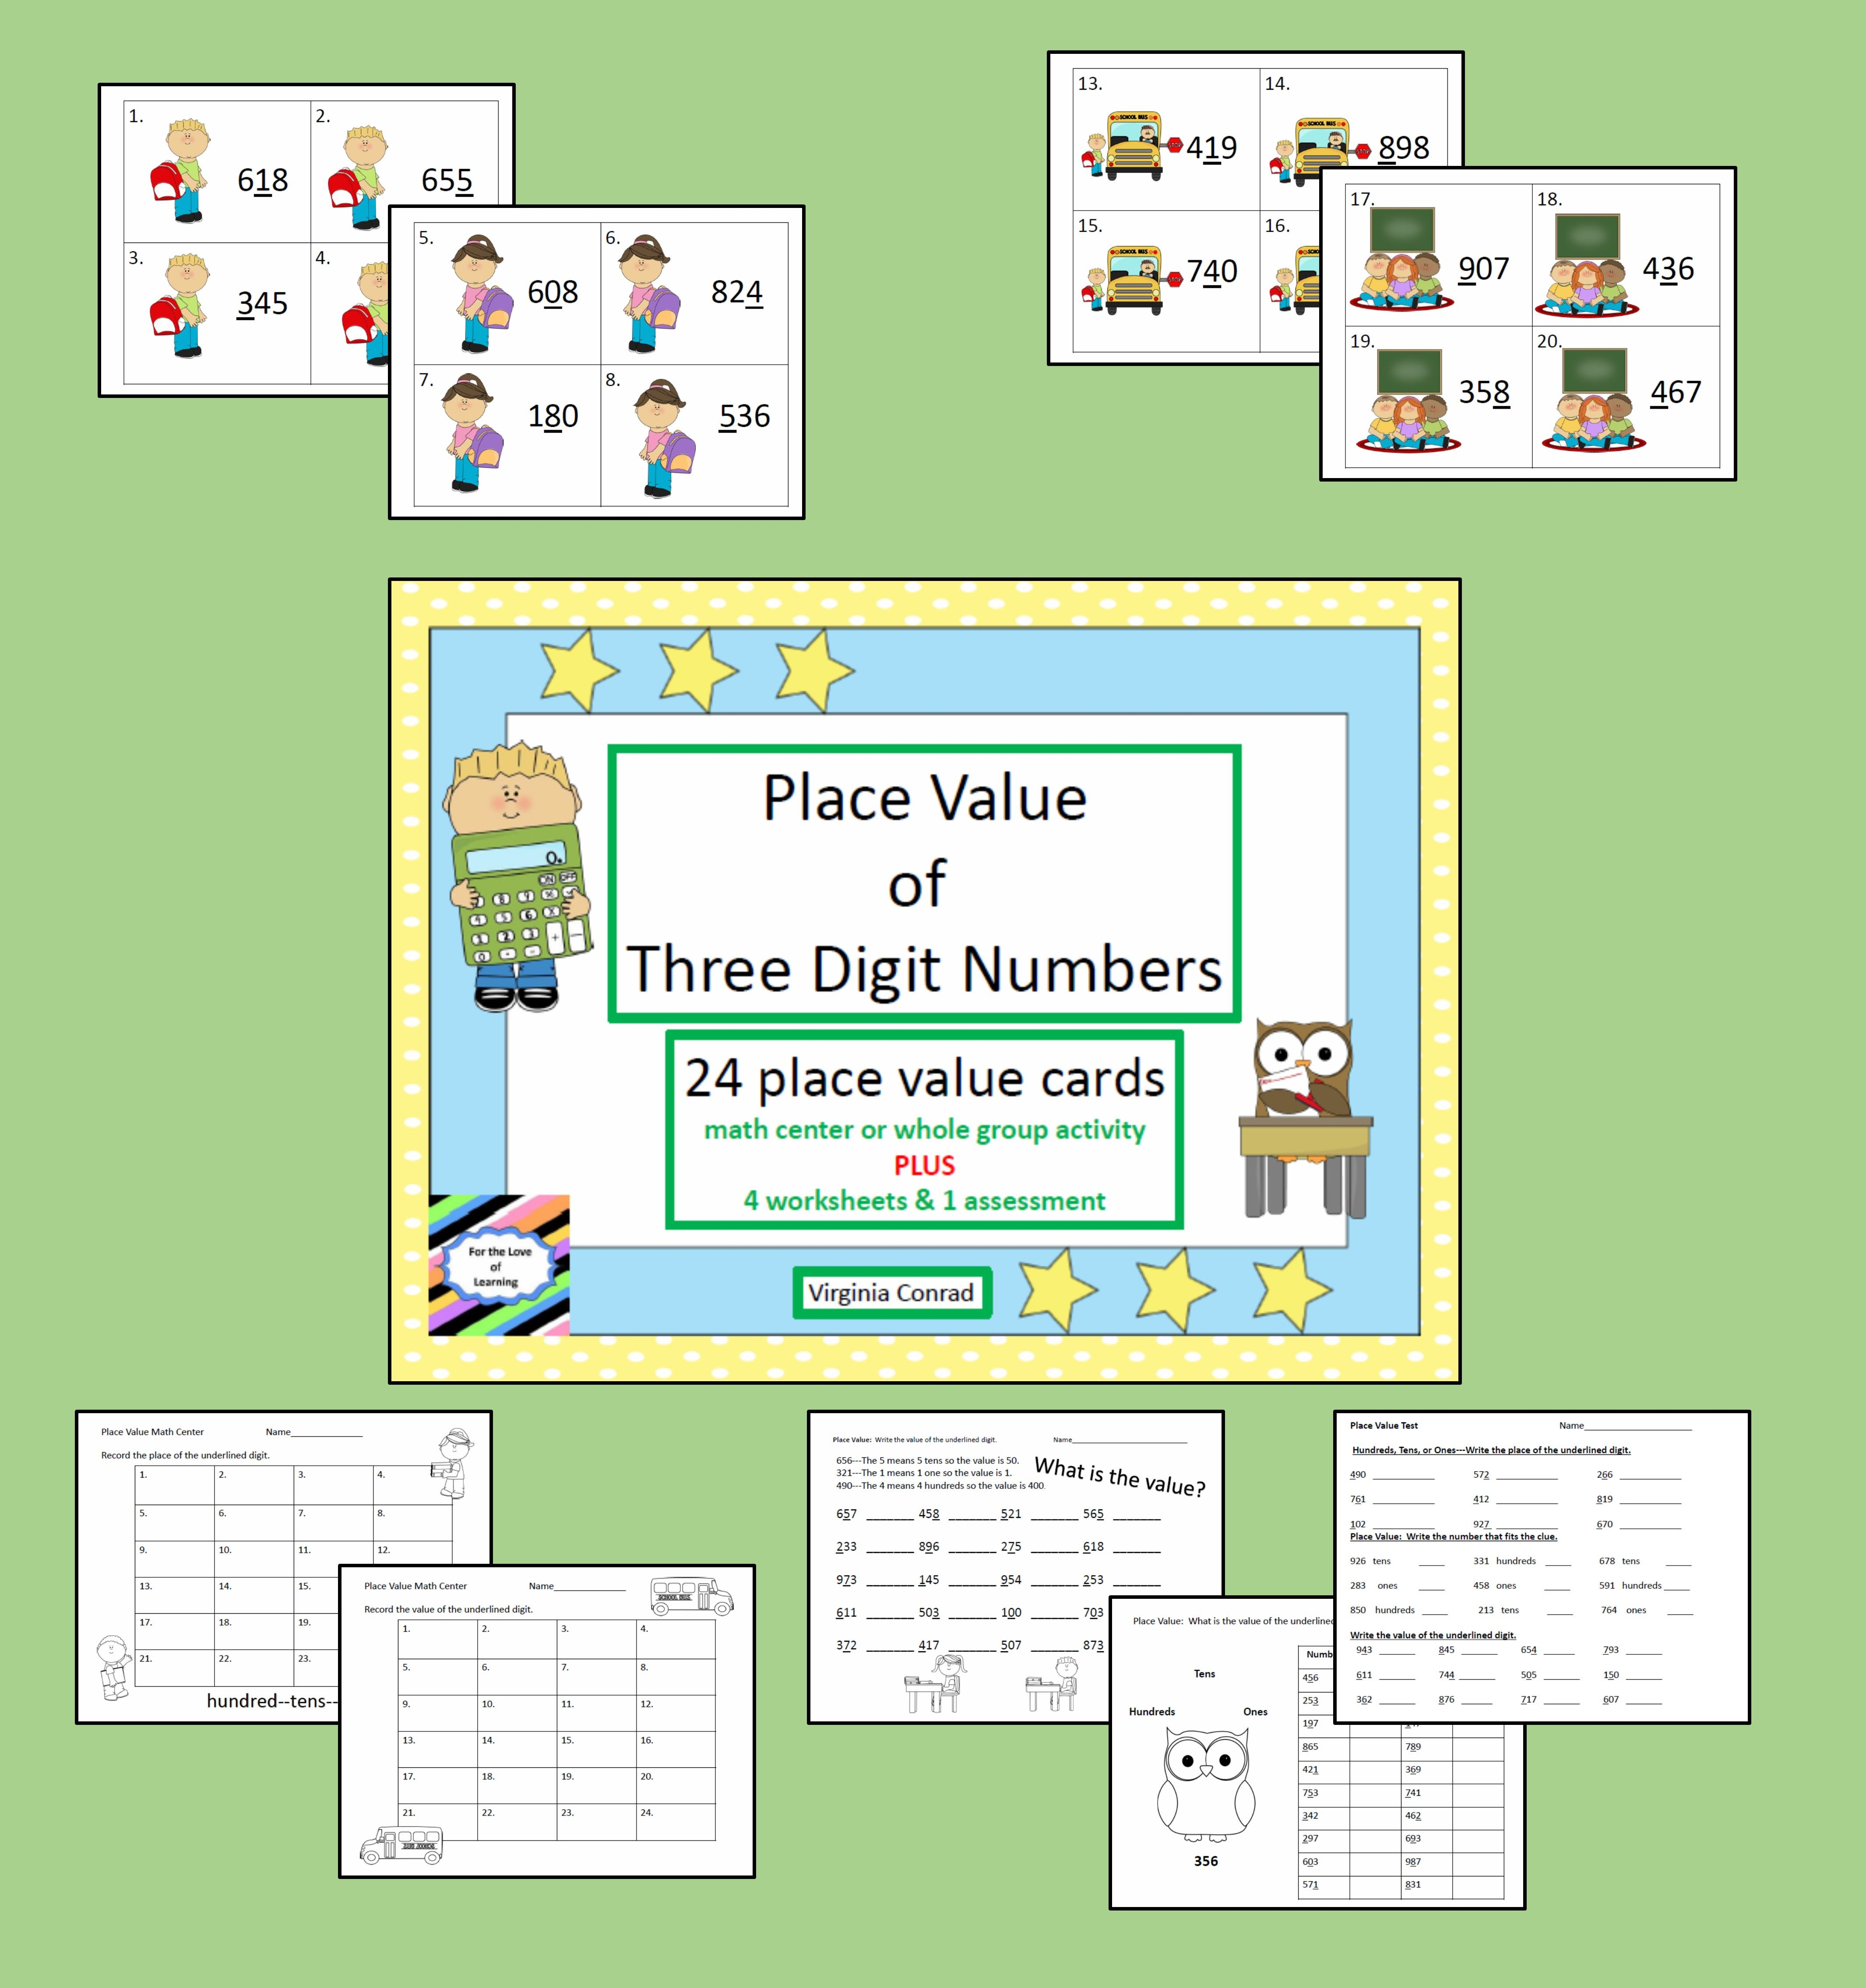 Place Value Of 3 Digit Numbers Back To School Theme